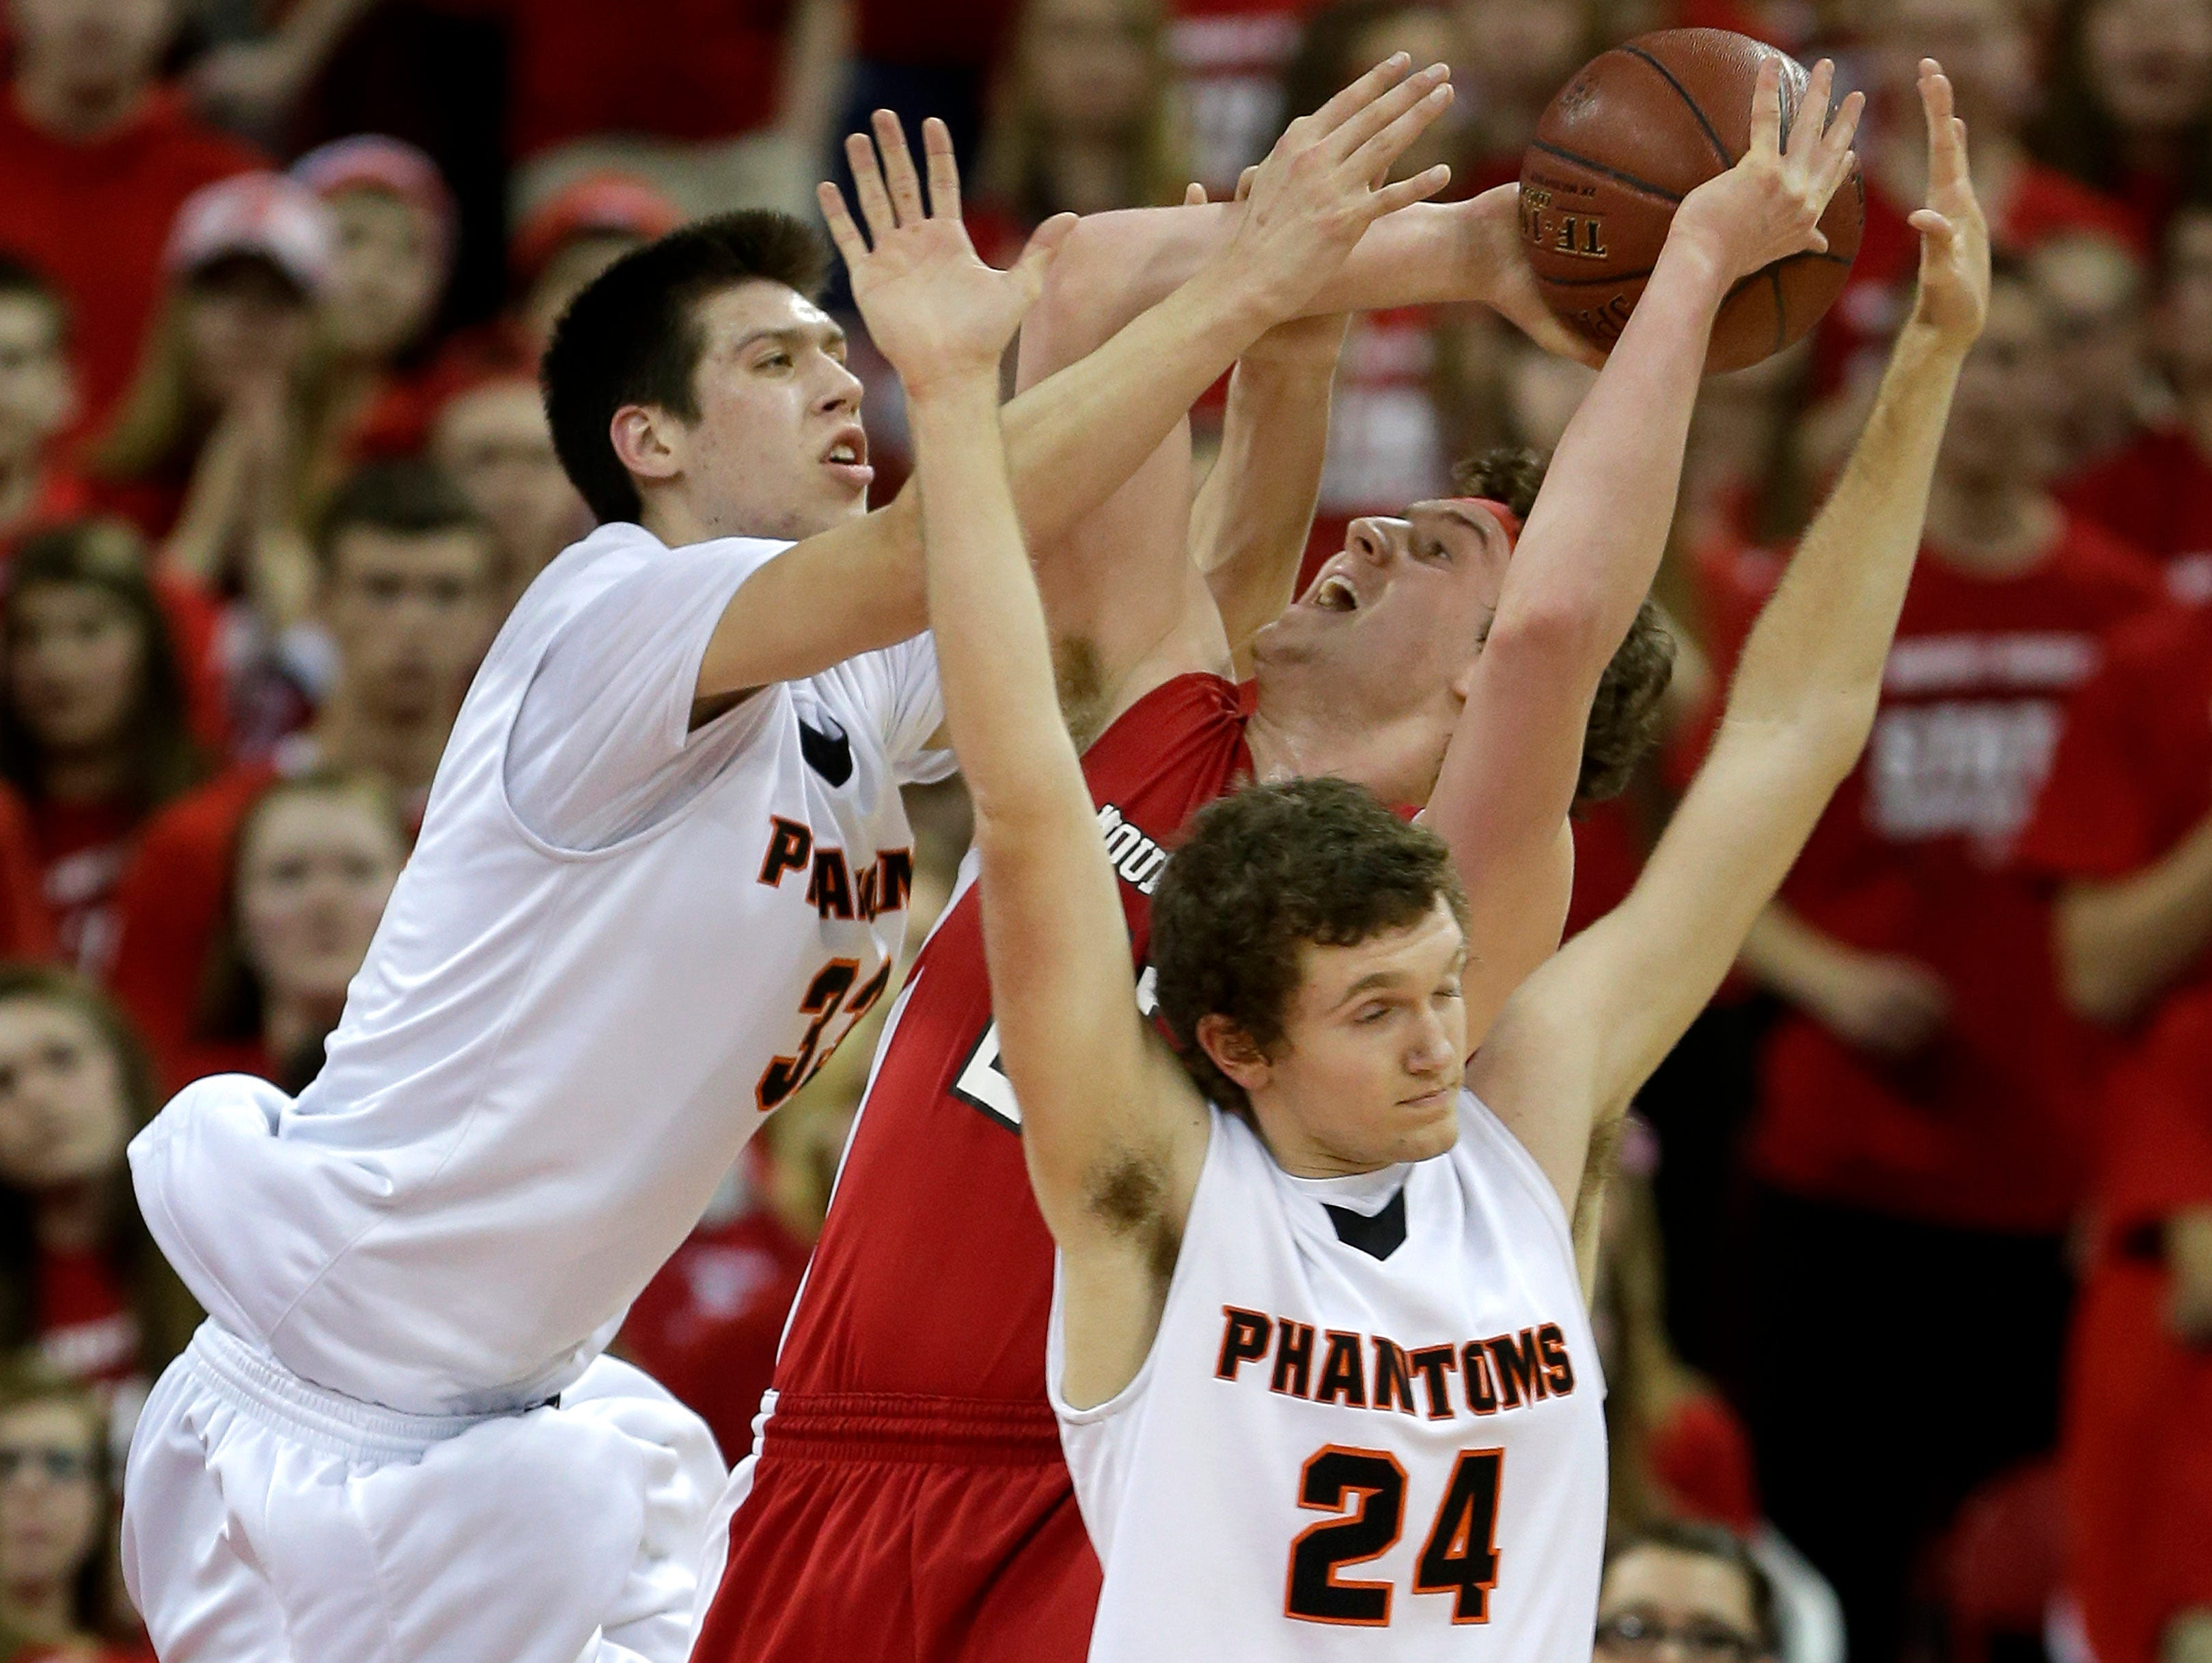 West De Pere High School's #33 Cody Schwartz and #24 Cole Kempen defend against Mount Horeb High School's #24 Nathaniel Osterloo during their Division 2 semifinal basketball game in the 100th annual WIAA State Boys Basketball Tournament at the Kohl Center on March 20, 2015, in Madison, Wis. Wm.Glasheen/Post-Crescent Media